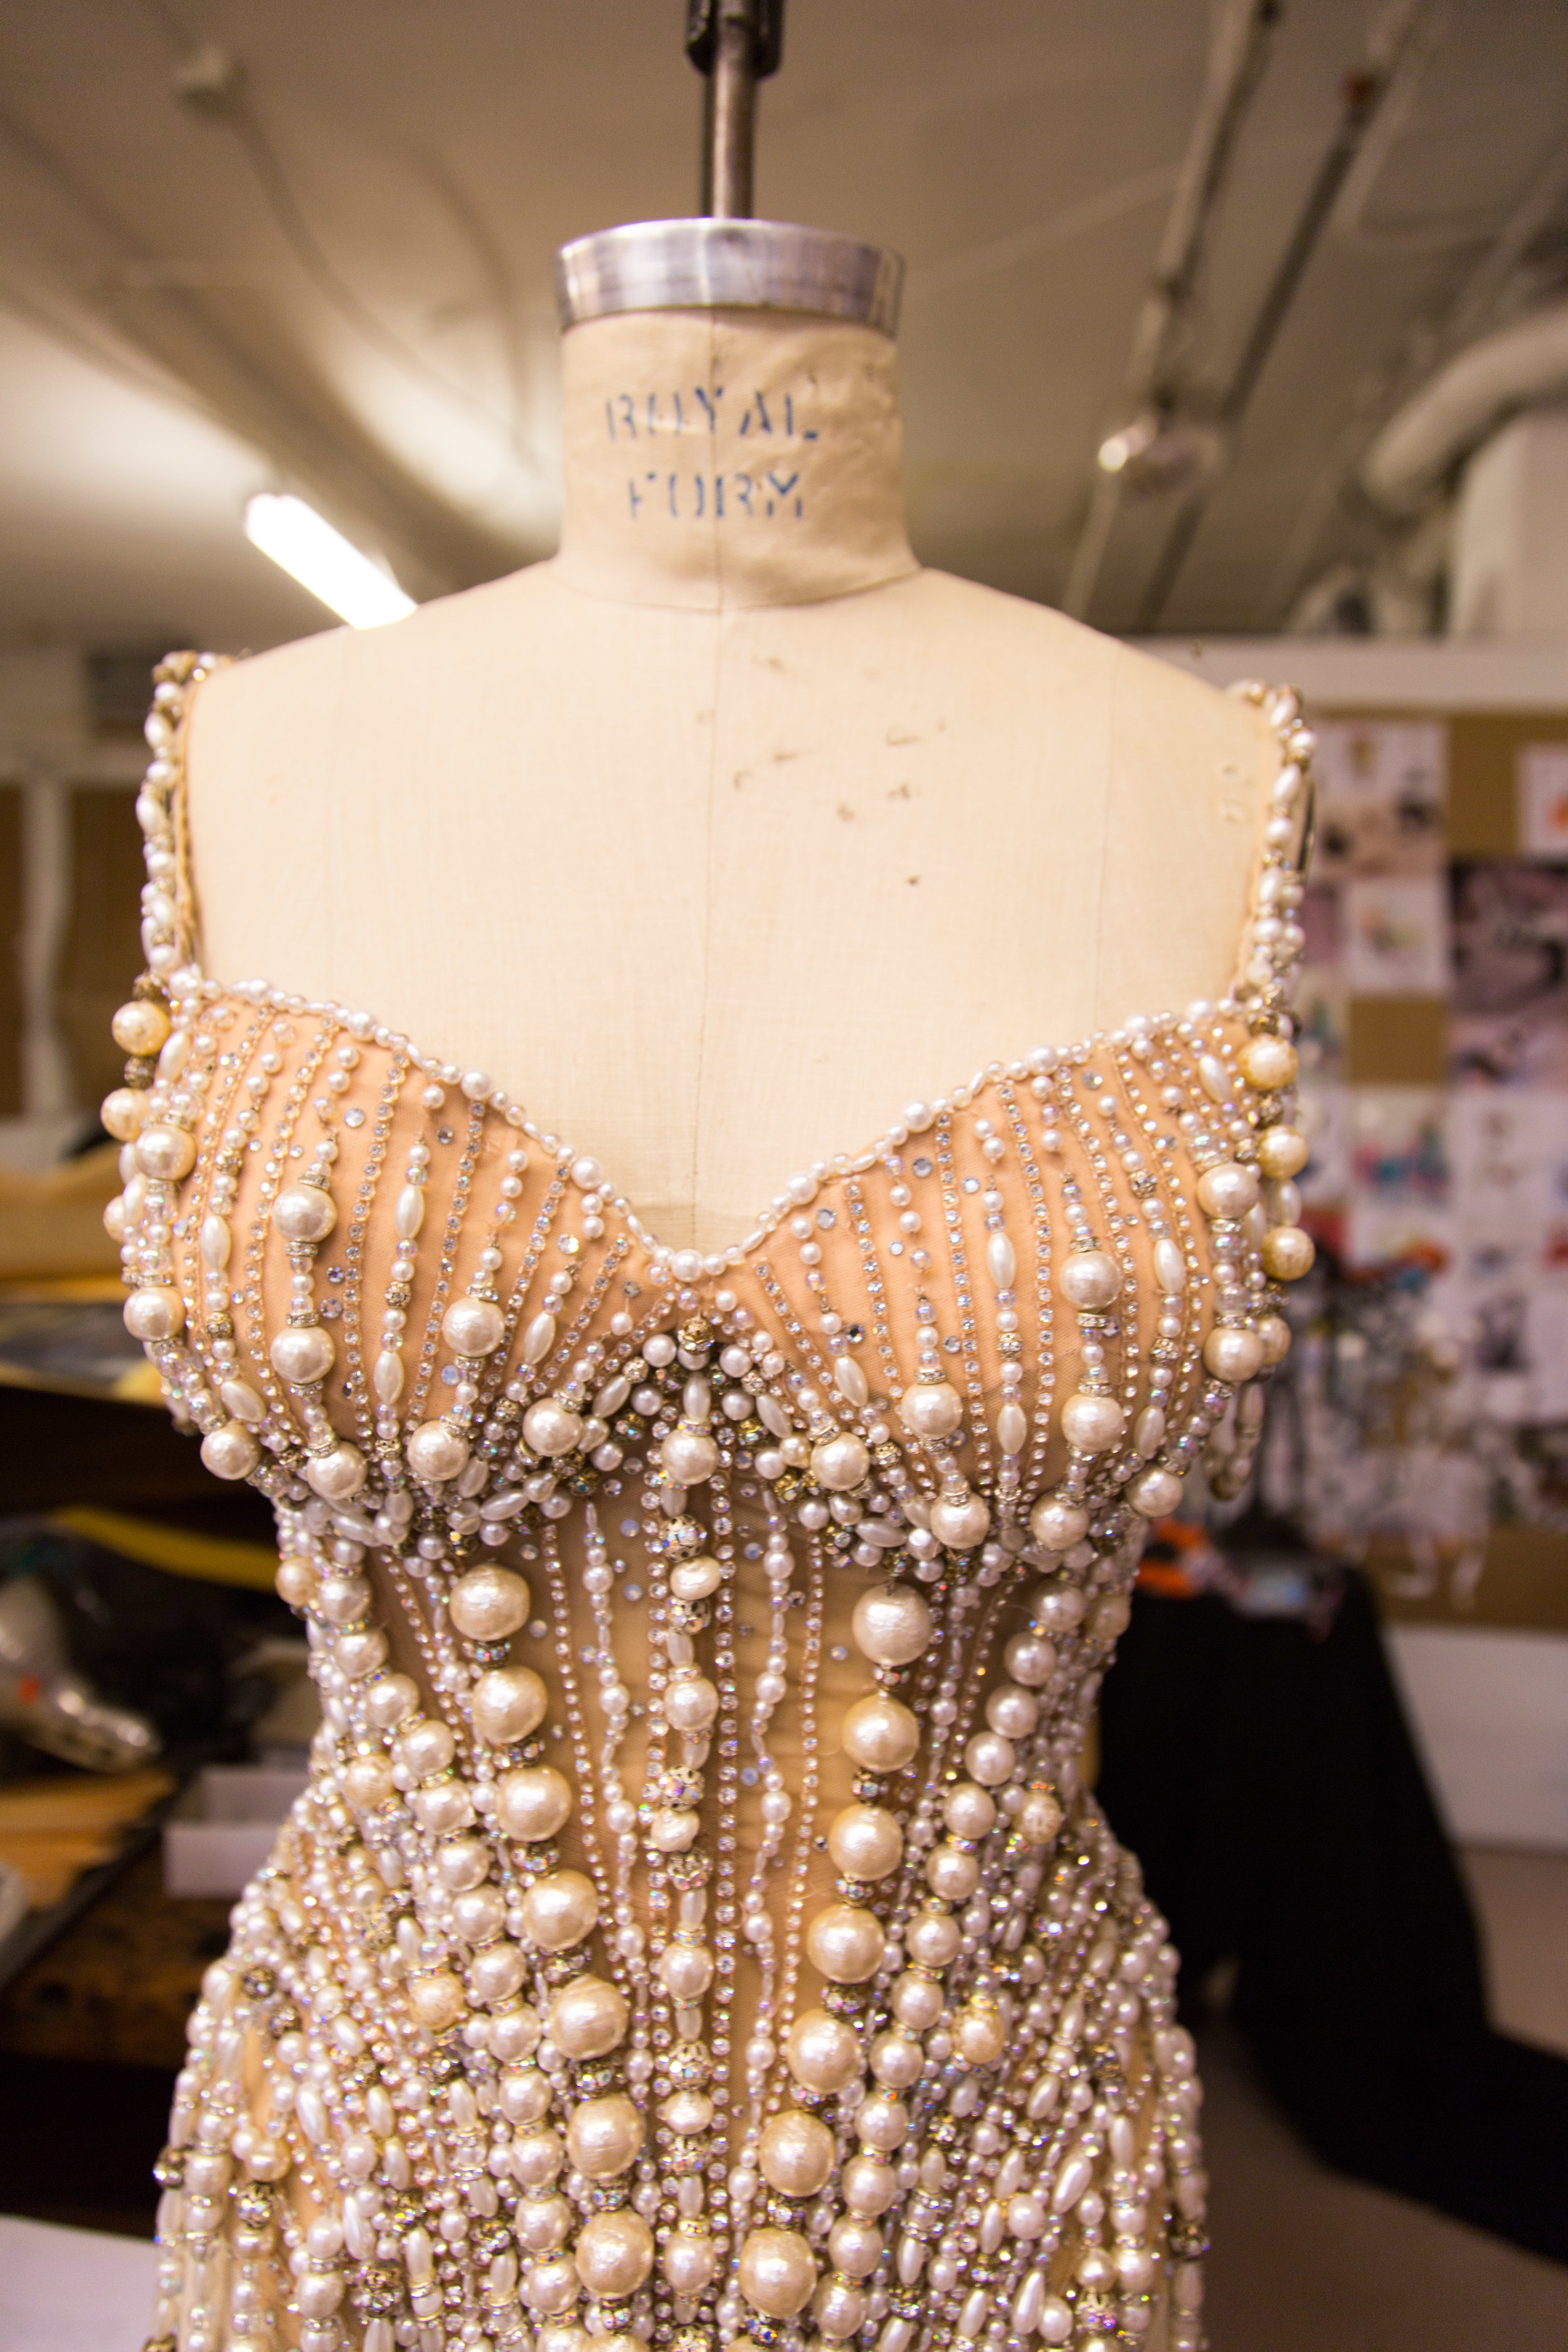 """ONE OF THE COSTUMES LONG DESIGNED FOR """"THE PRODUCERS.'"""" HE WON A 2001 TONY AWARD FOR HIS WORK ON THE SHOW"""